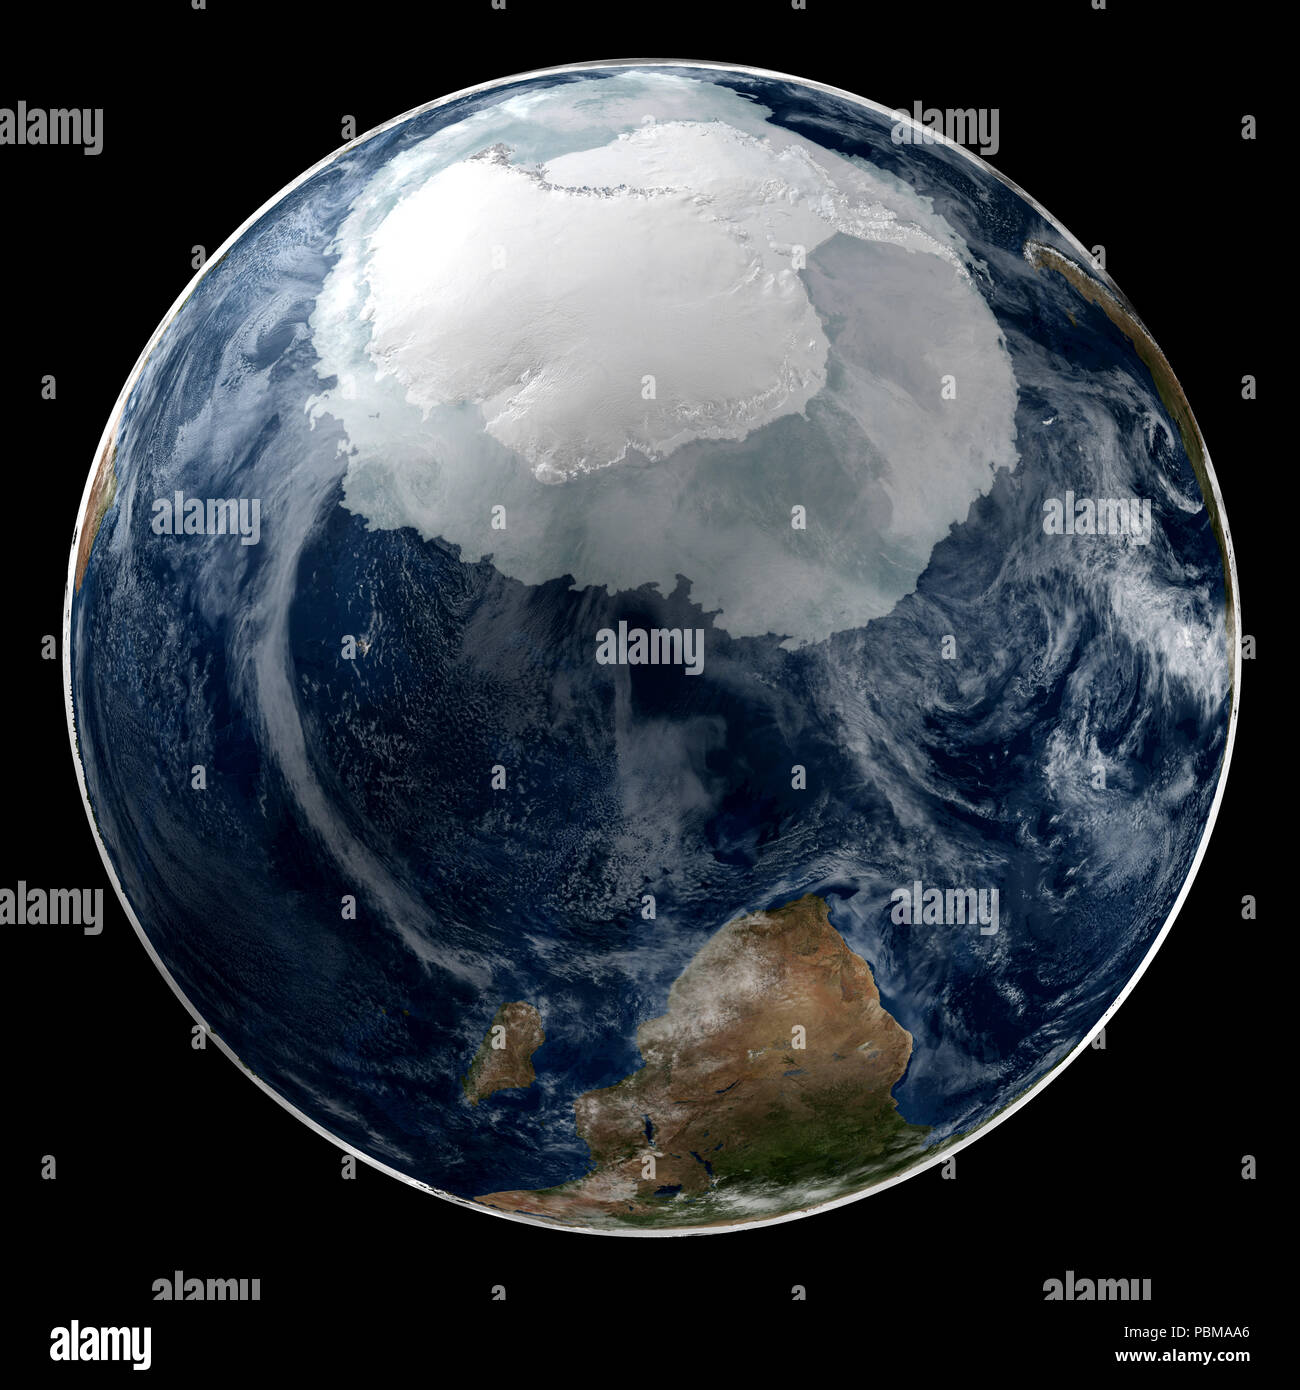 This image shows a view of the Earth on September 21, 2005 with the full Antarctic region visible. - Stock Image